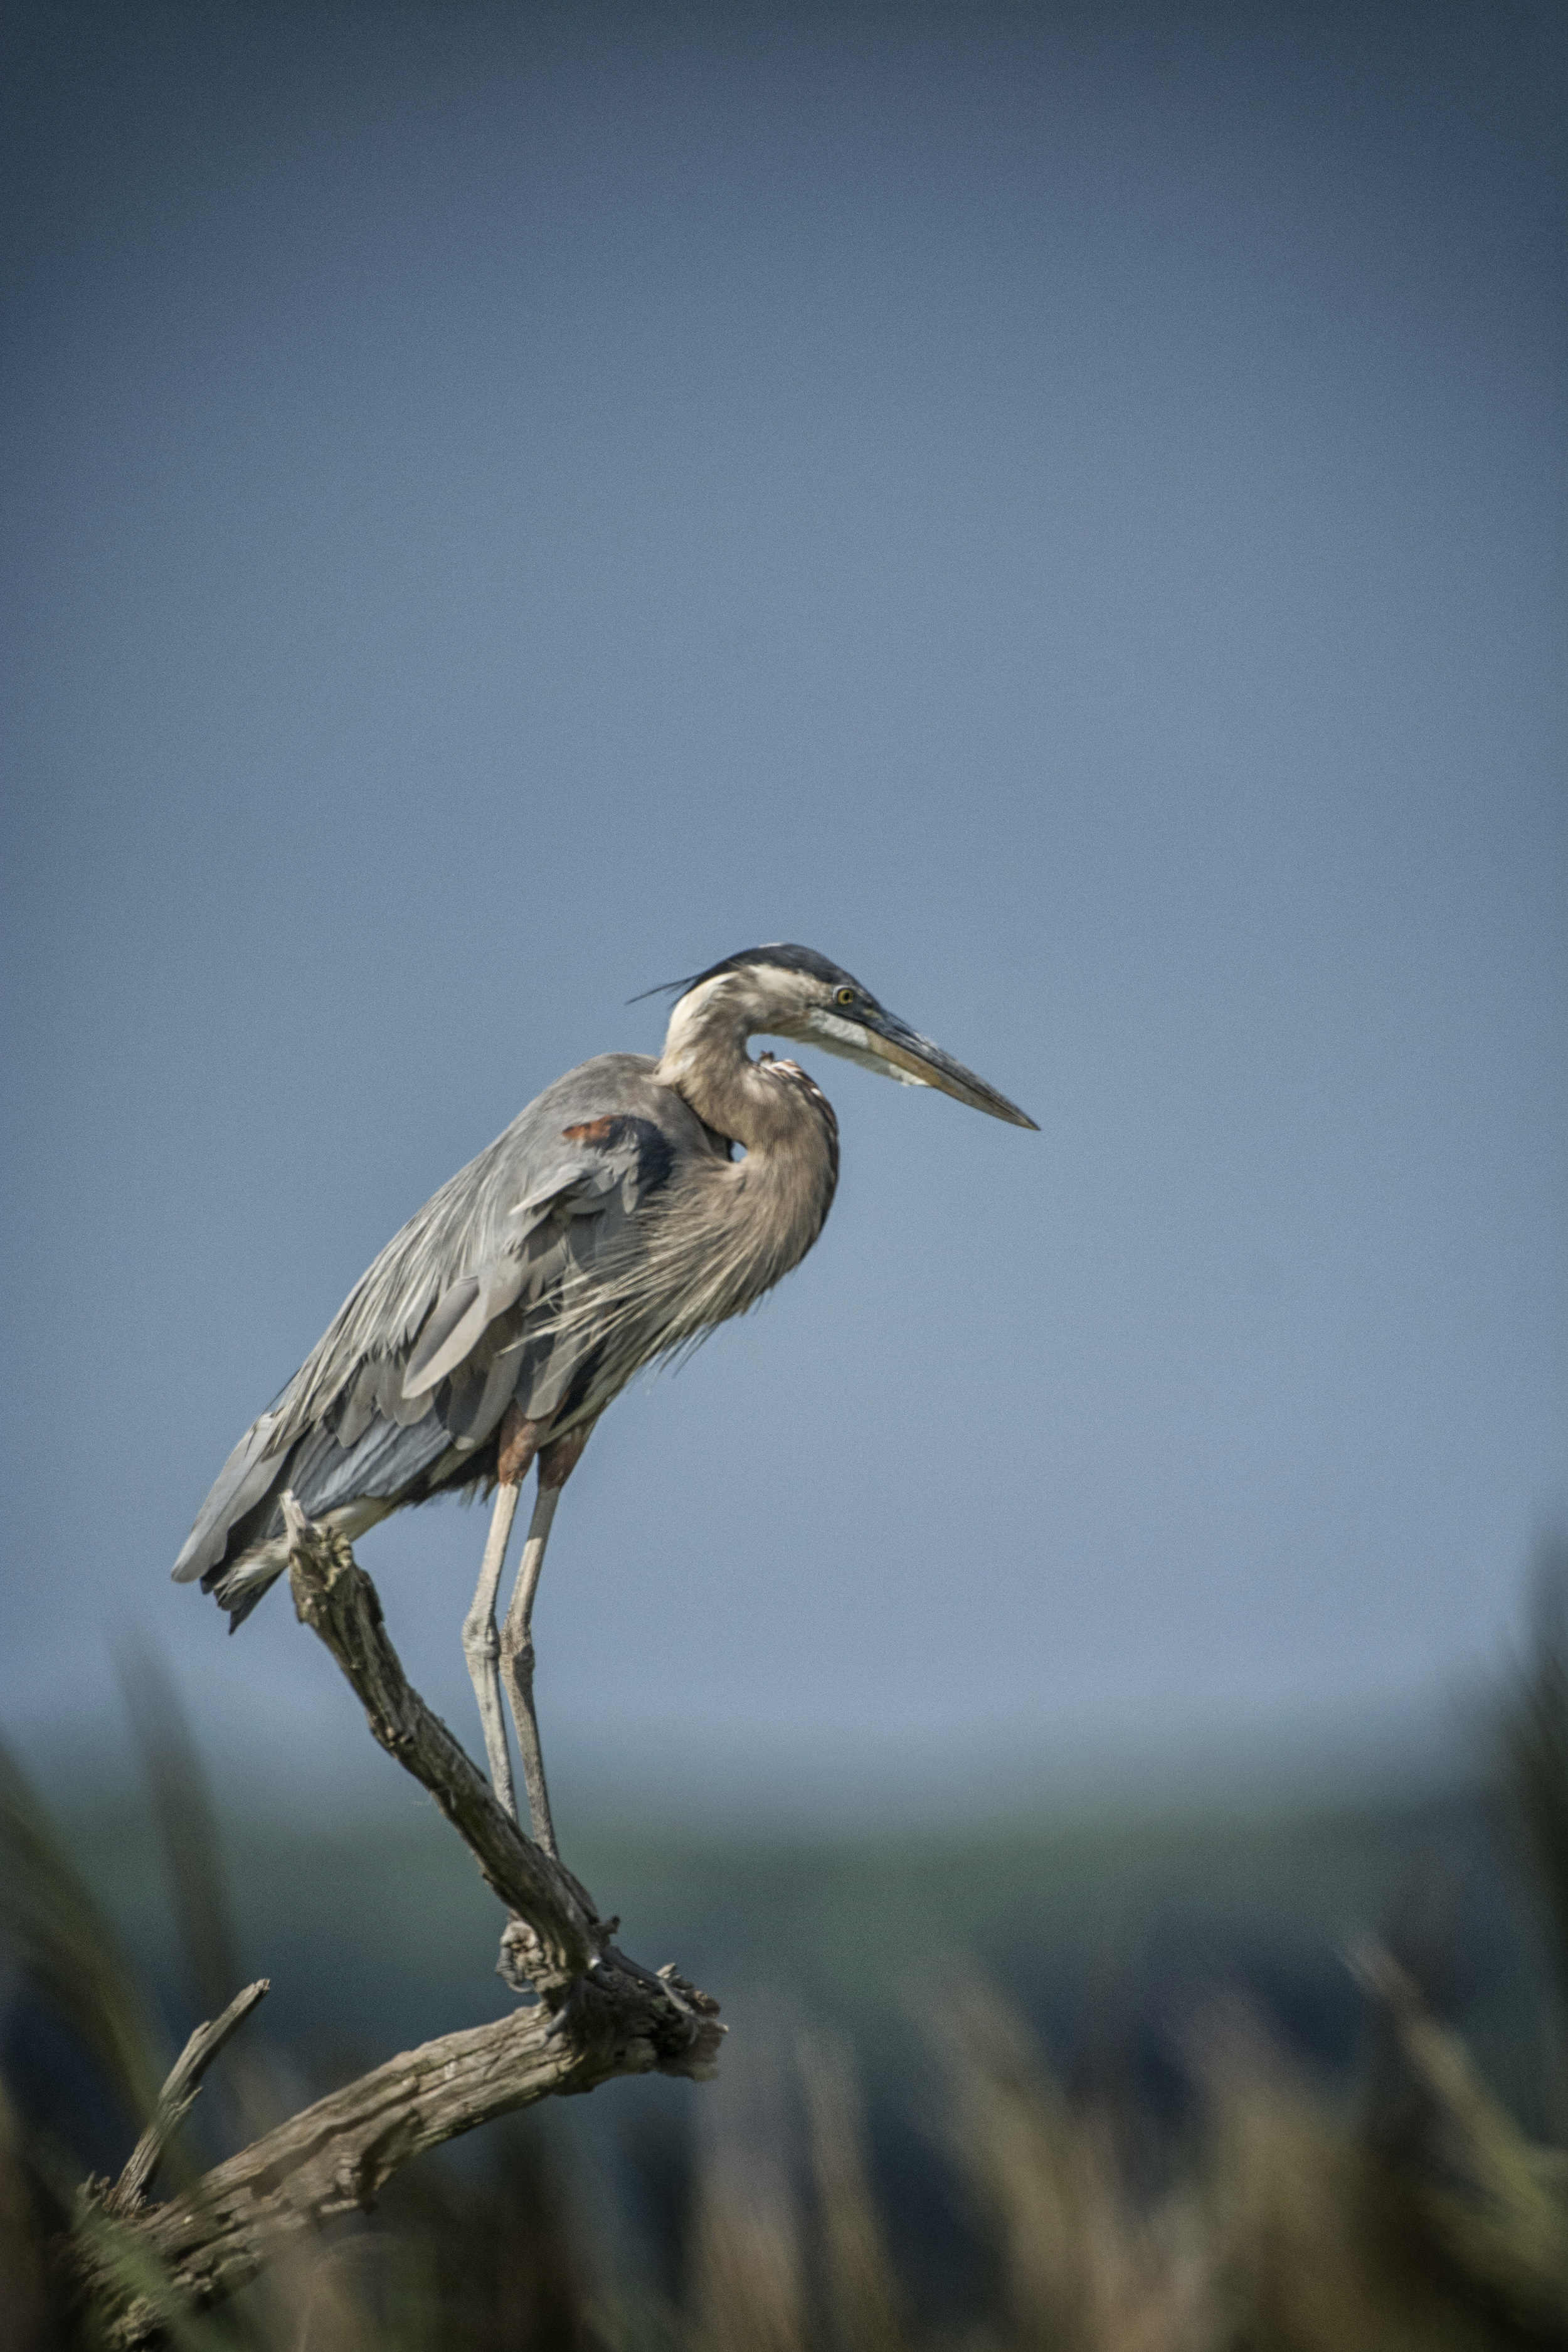 Great Blue Heron at Bombay Hook NWR